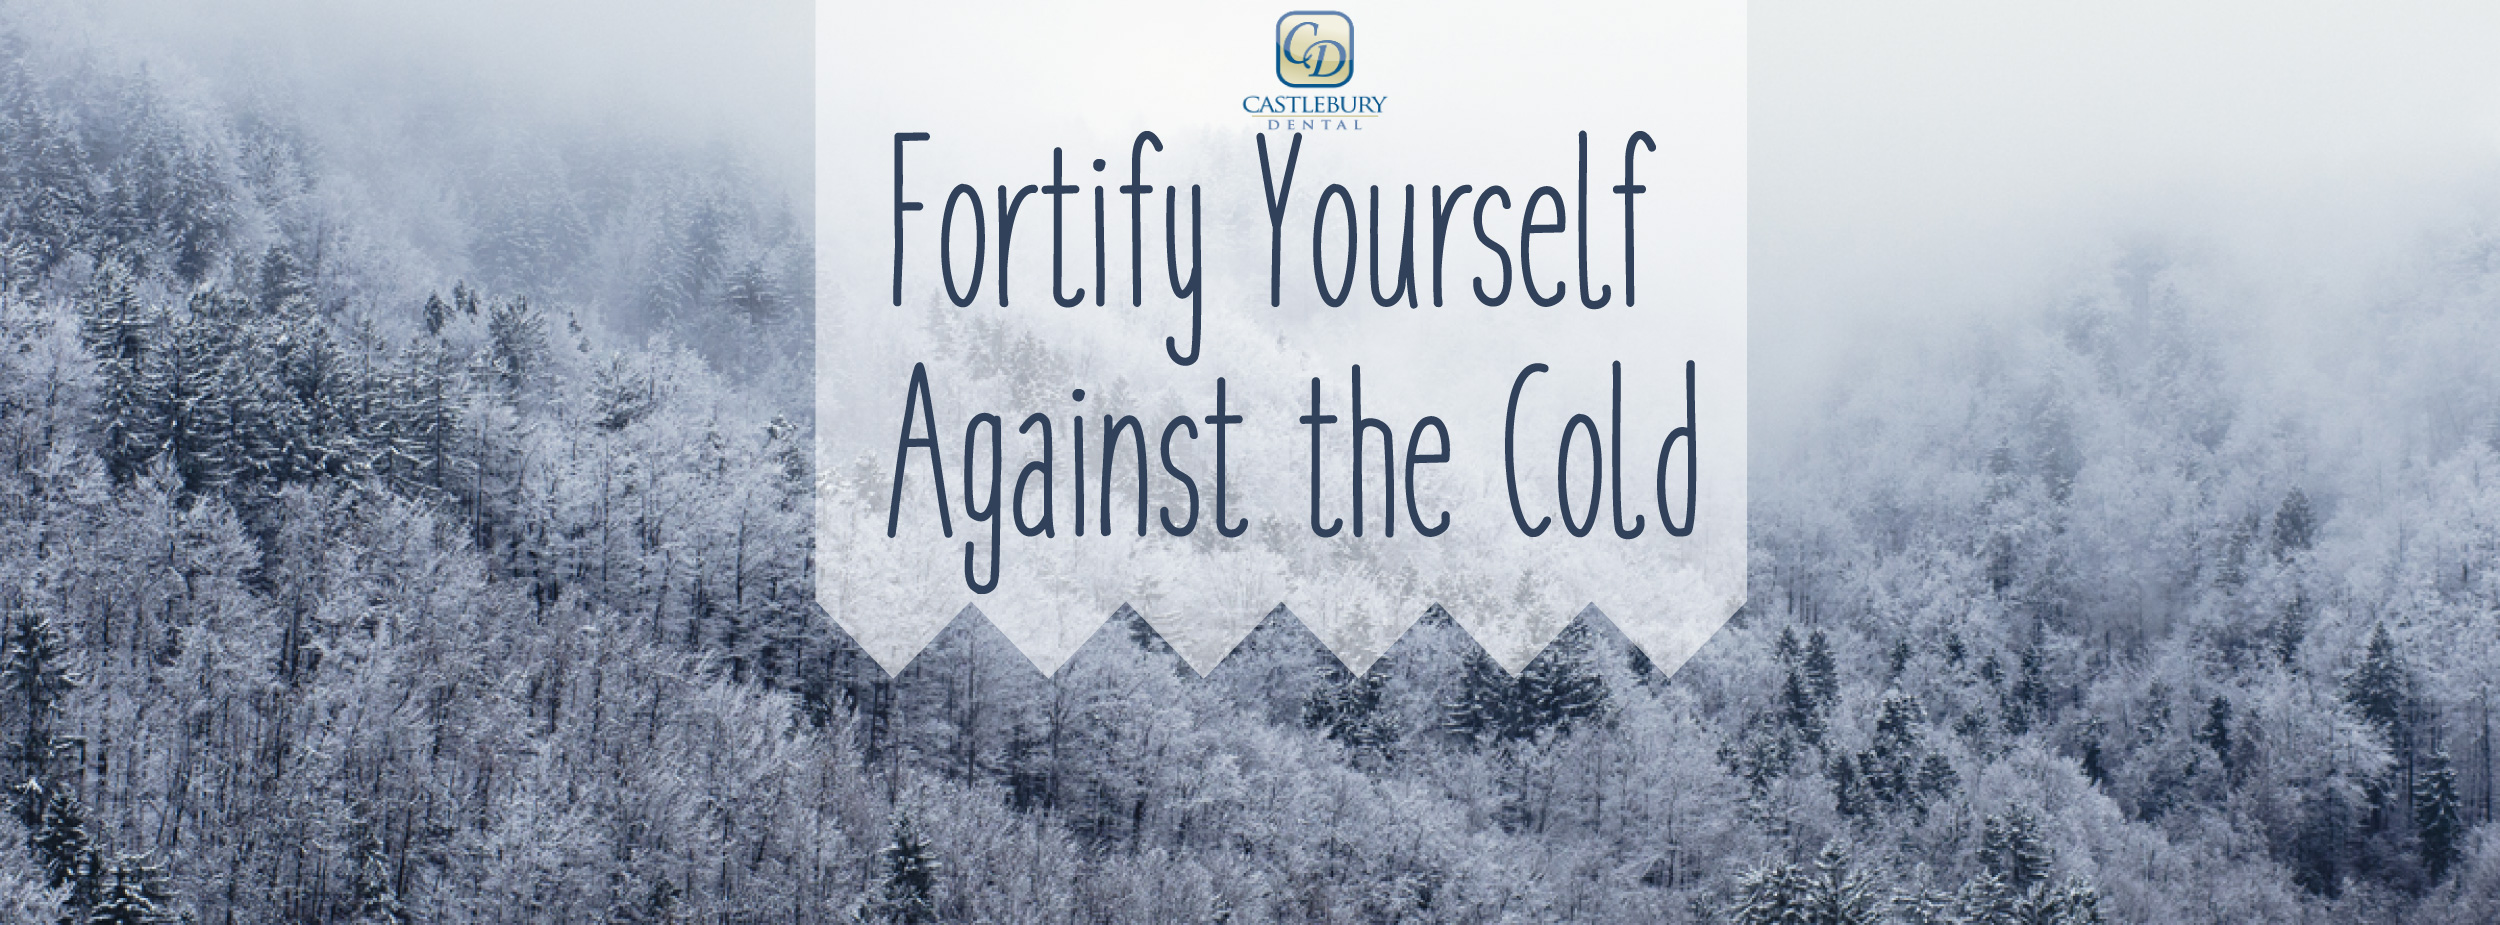 Fortify Yourself Against the Cold